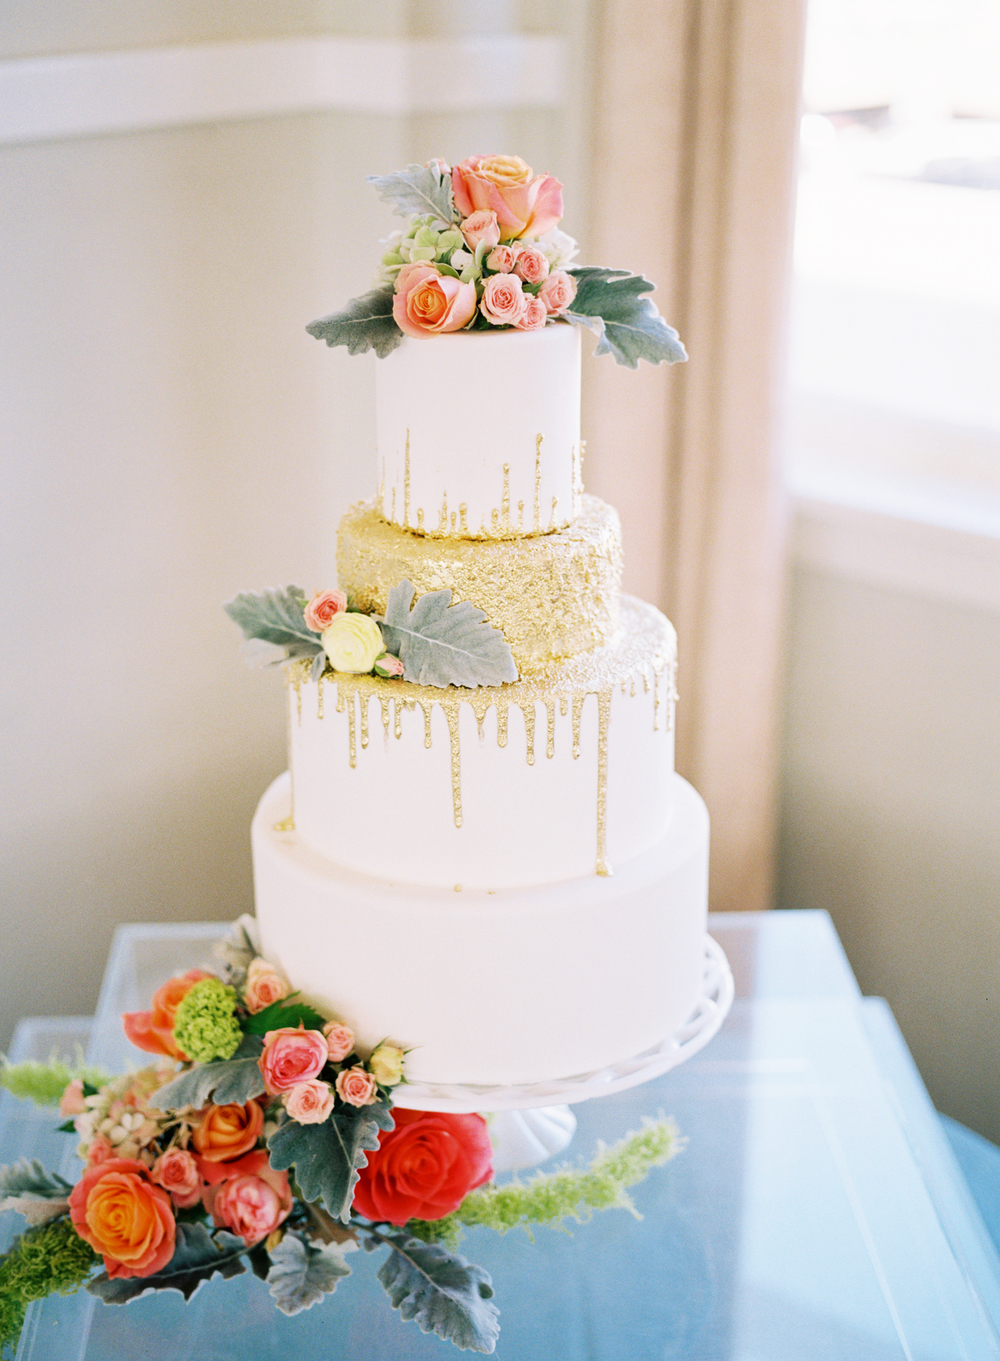 custom-wedding-cake-white-gold-drizzle-dustymiller-sugarbeesweets.JPG